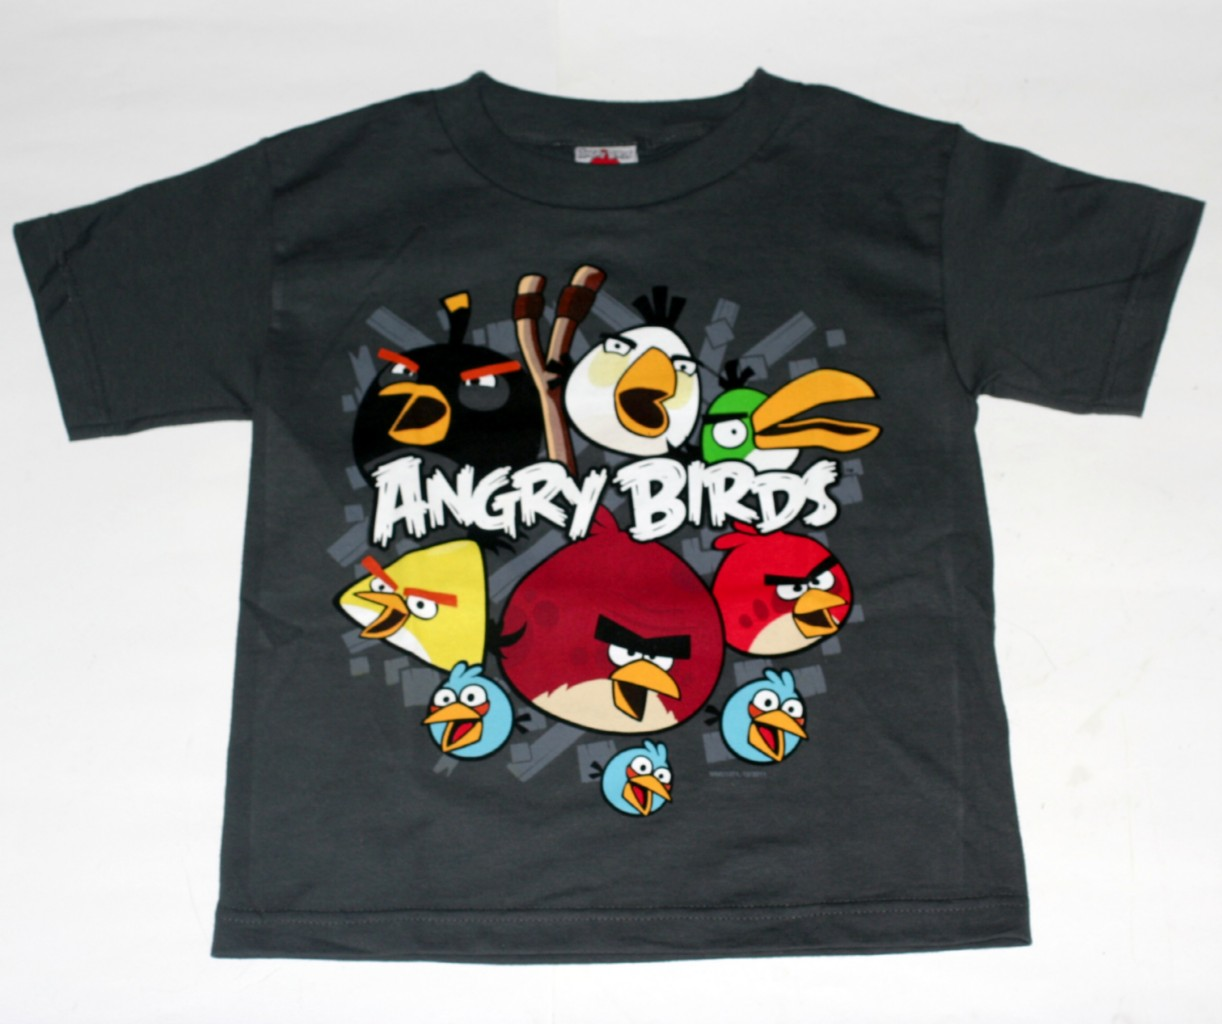 Find angry birds from a vast selection of Baby and Toddler Clothing and Accessories. Get great deals on eBay!